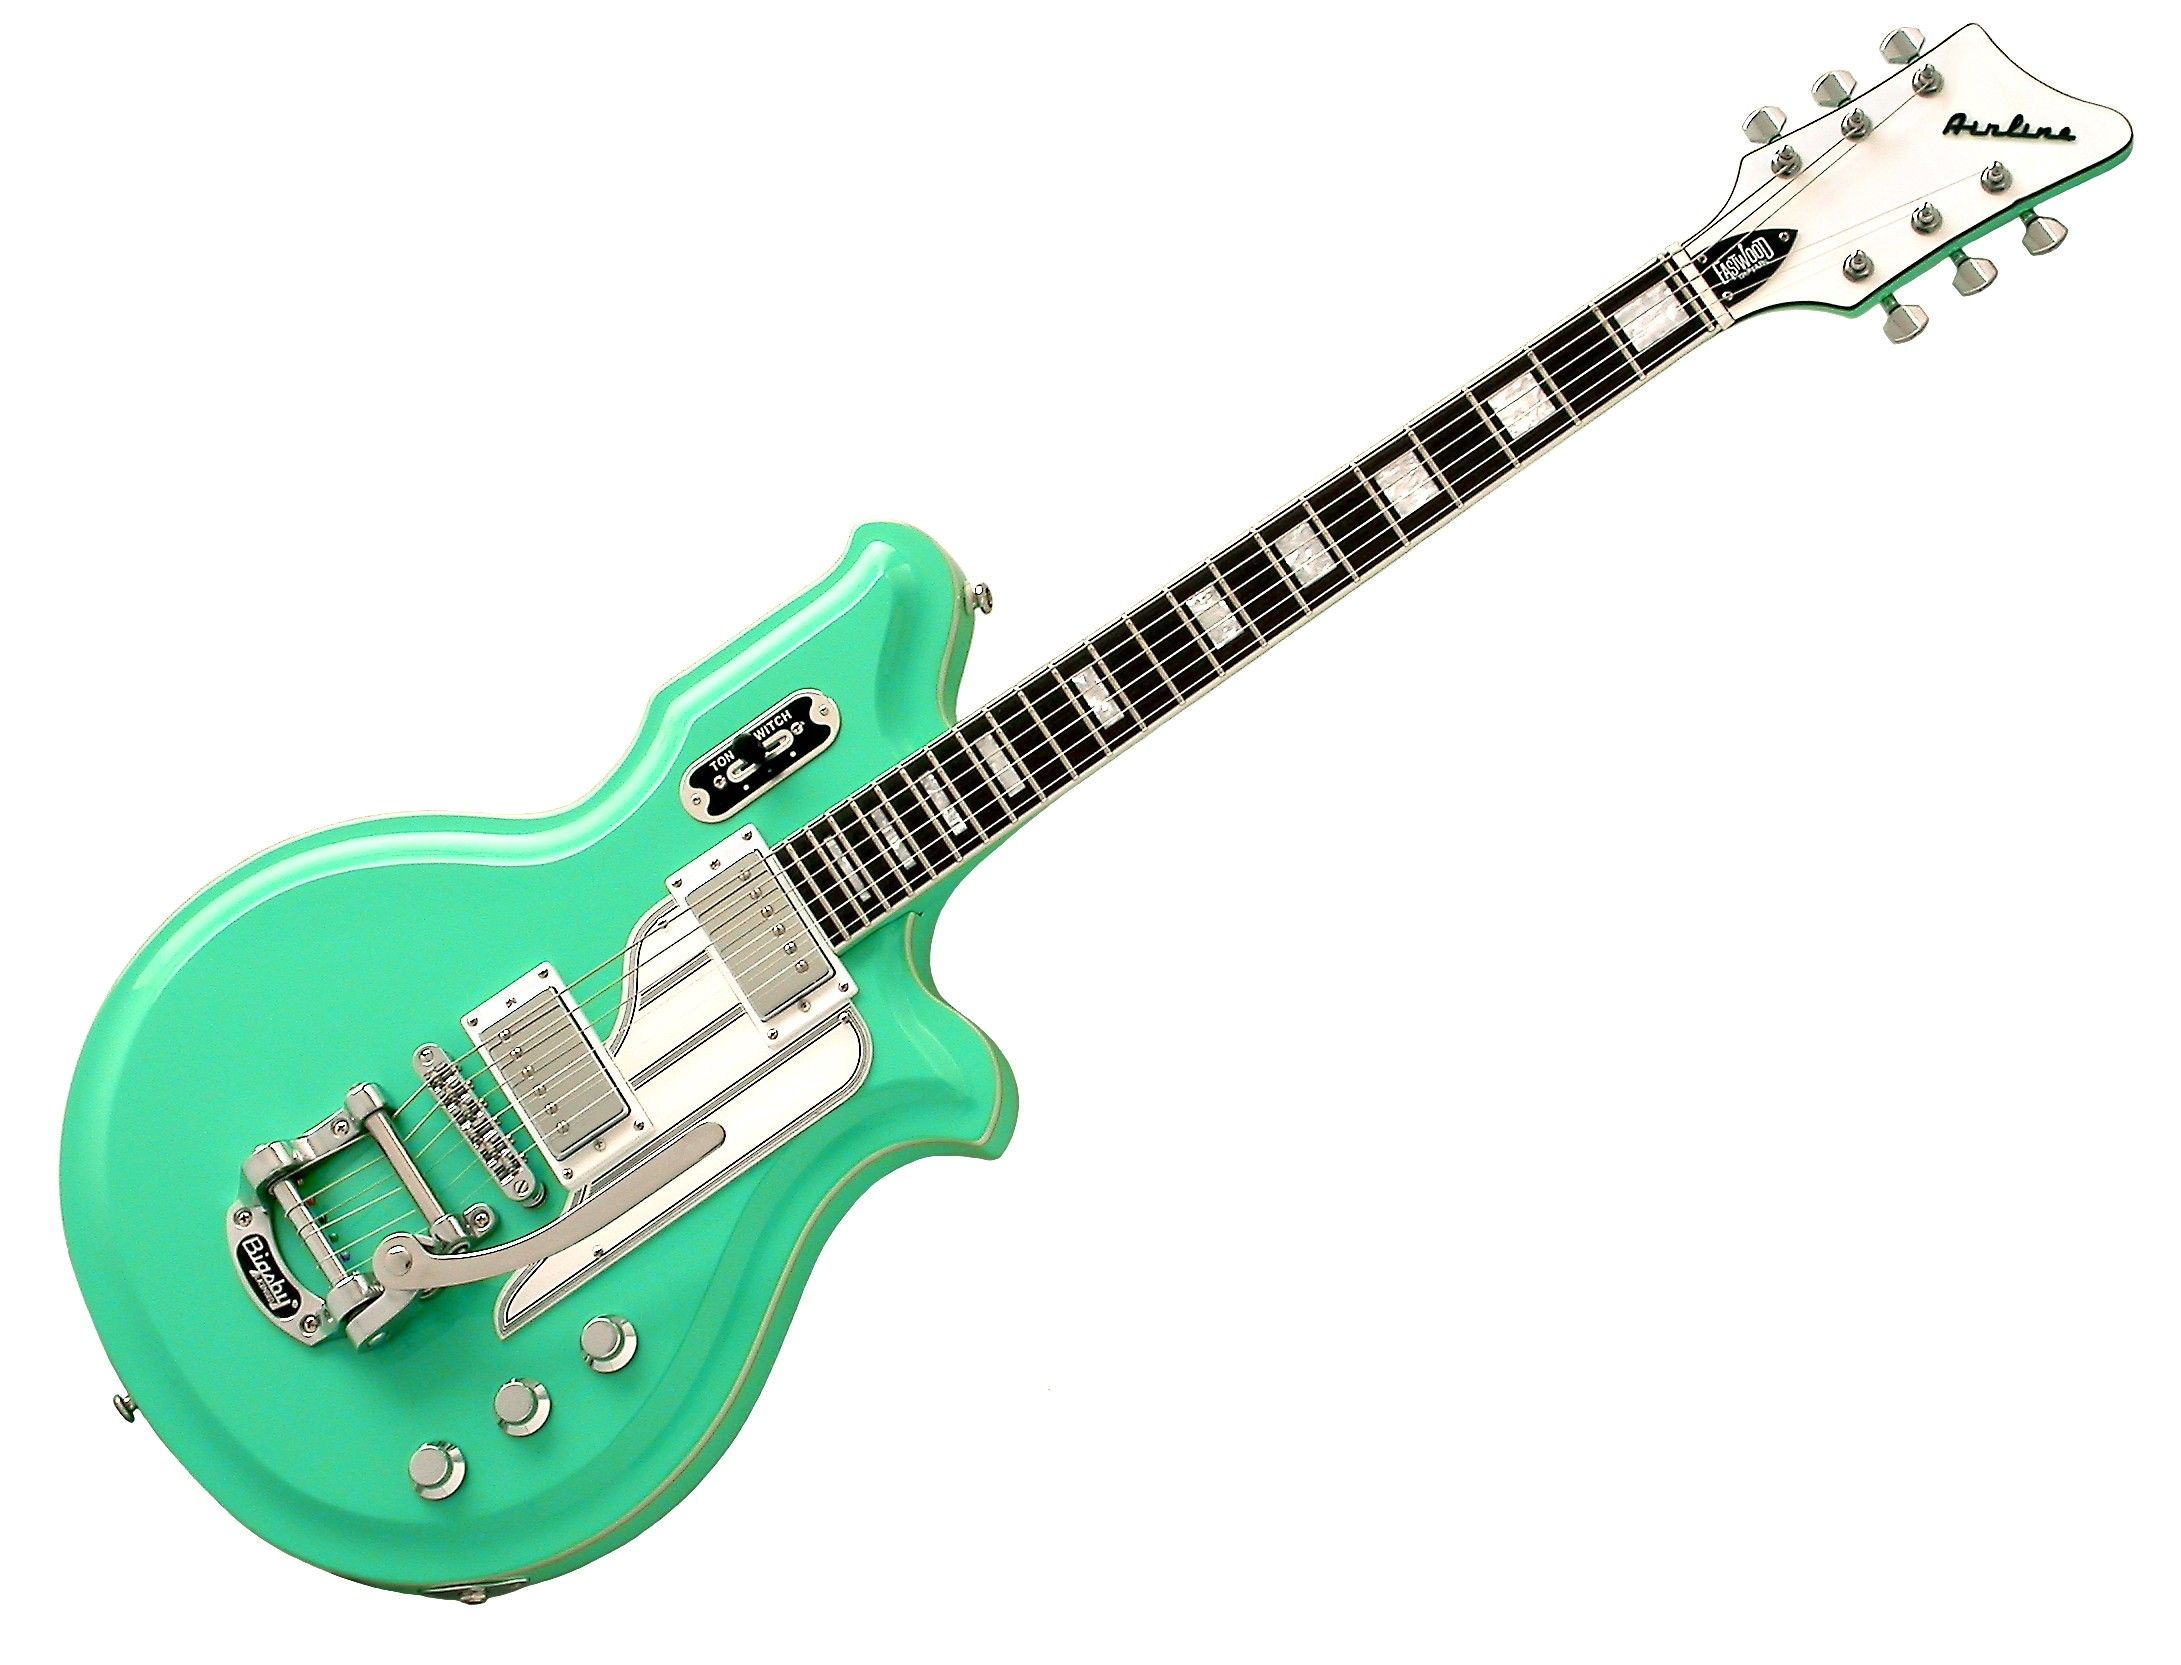 59 best guitar images on pinterest electric guitars guitars and wire guitarist colin newman rocked this thing at first avenue airline map in seafoam green asfbconference2016 Image collections